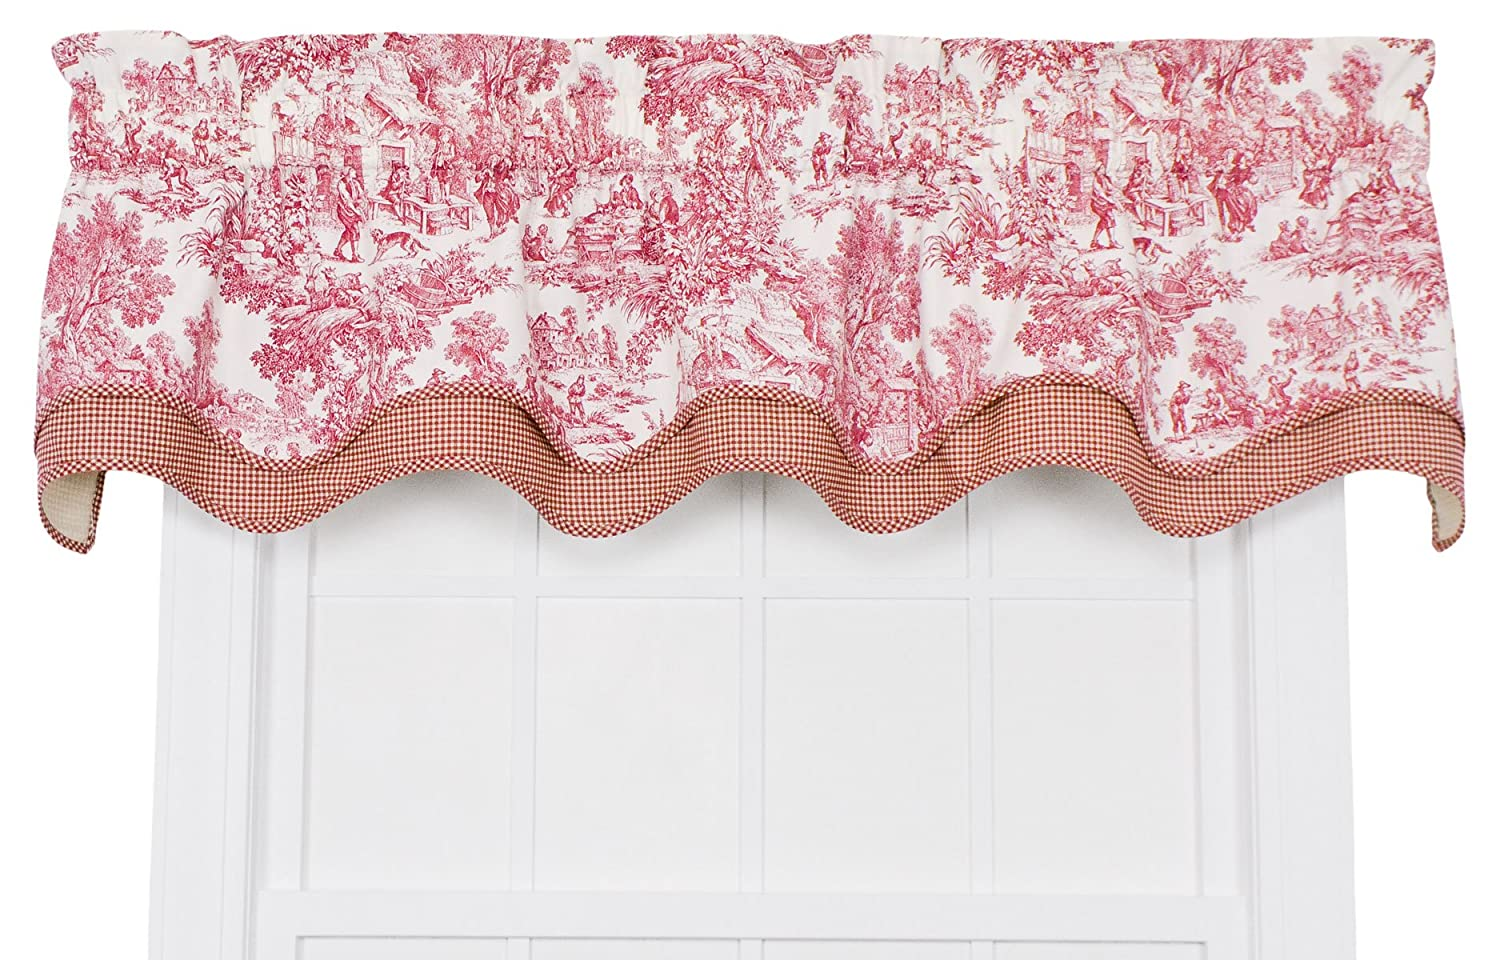 Victoria Park Toile Bradford Valence Window Curtain, Red